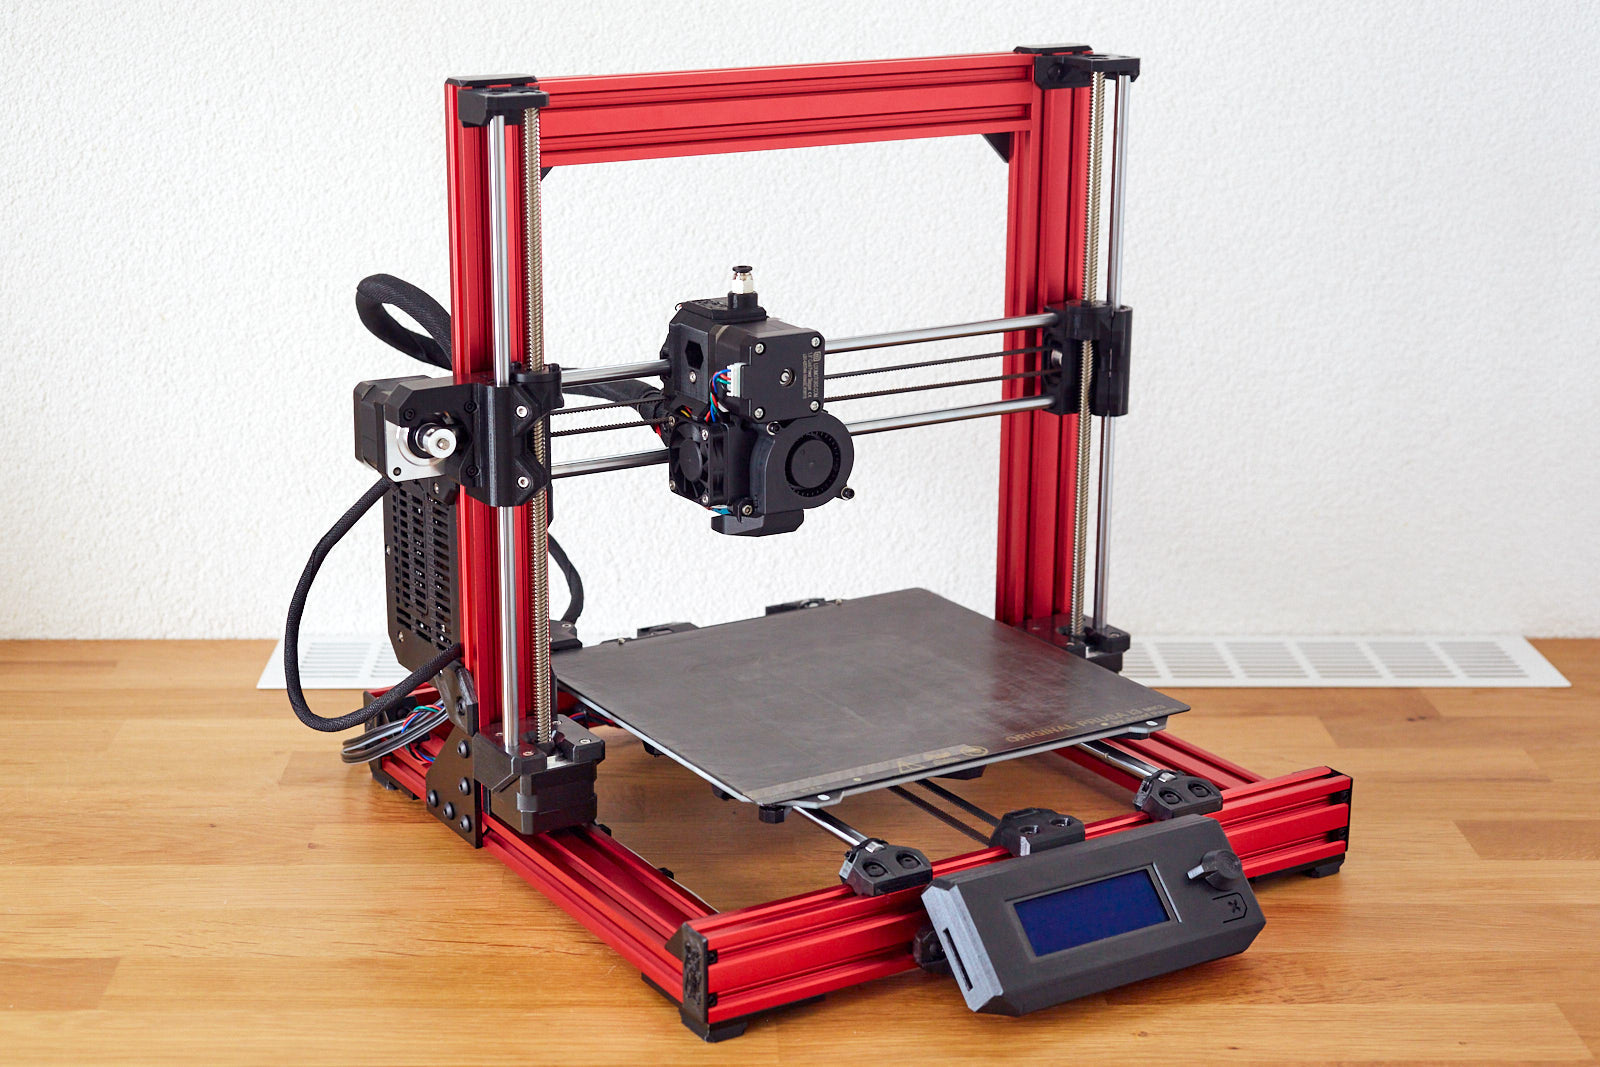 LDO MK3S+ with BEAR 2.1 Frame and Cool Power Extruder *FULLY ASSEMBLED*